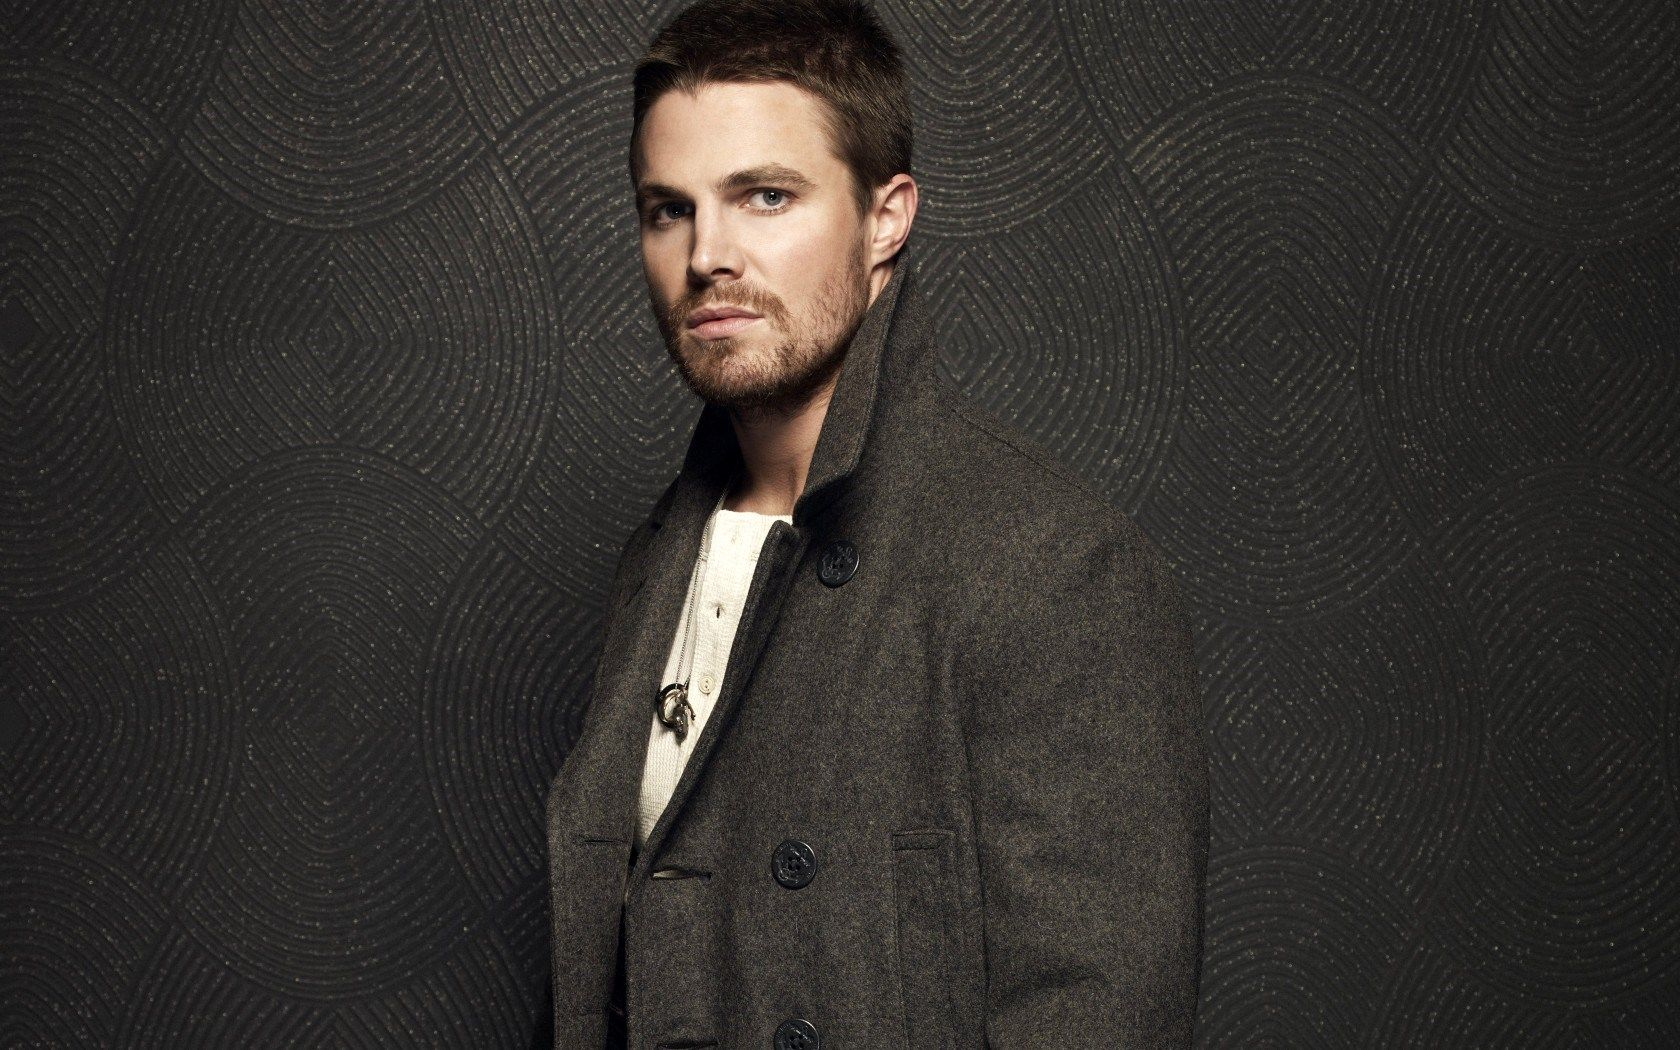 stephen amell gif huntstephen amell wwe, stephen amell gif, stephen amell instagram, stephen amell vk, stephen amell wife, stephen amell height, stephen amell arrow, stephen amell gif hunt, stephen amell png, stephen amell 2017, stephen amell wiki, stephen amell workout, stephen amell and emily bett rickards, stephen amell википедия, stephen amell brother, stephen amell training, stephen amell hairstyle, stephen amell wikipedia, stephen amell вк, stephen amell beard